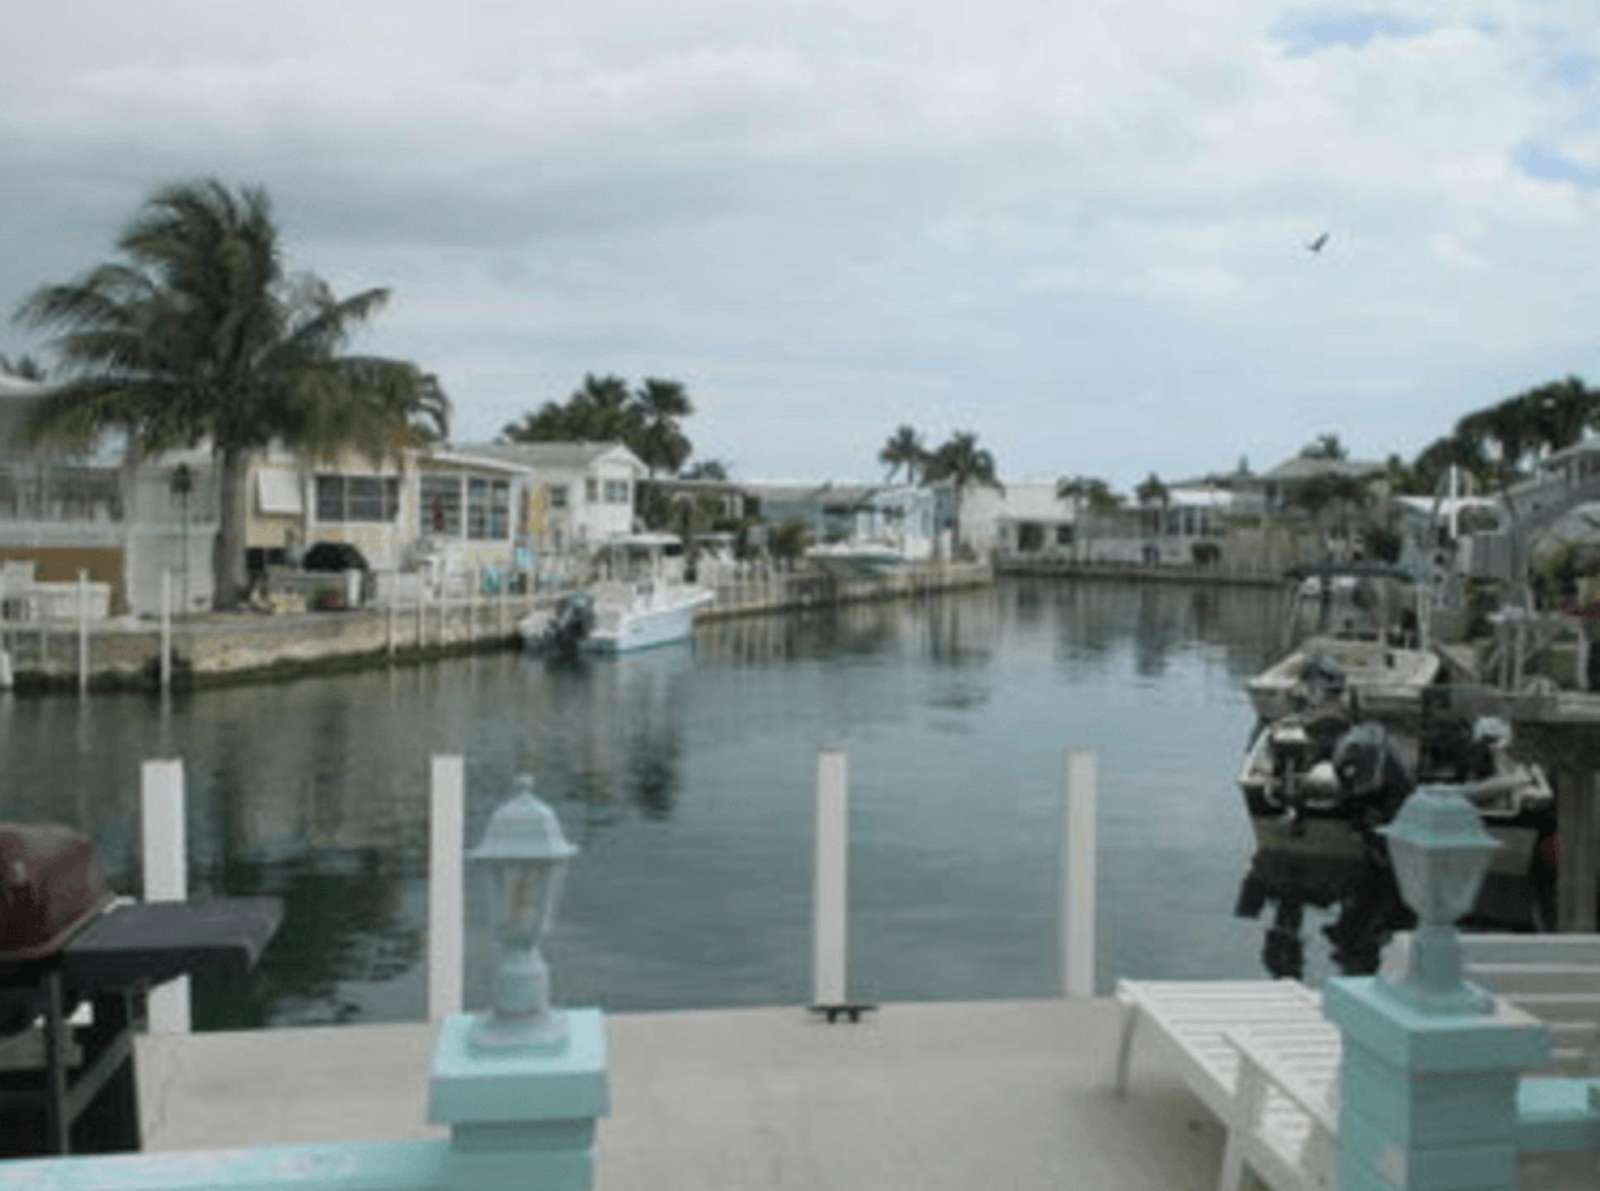 Canal with 35' Seawall for your boat easy open water access - property